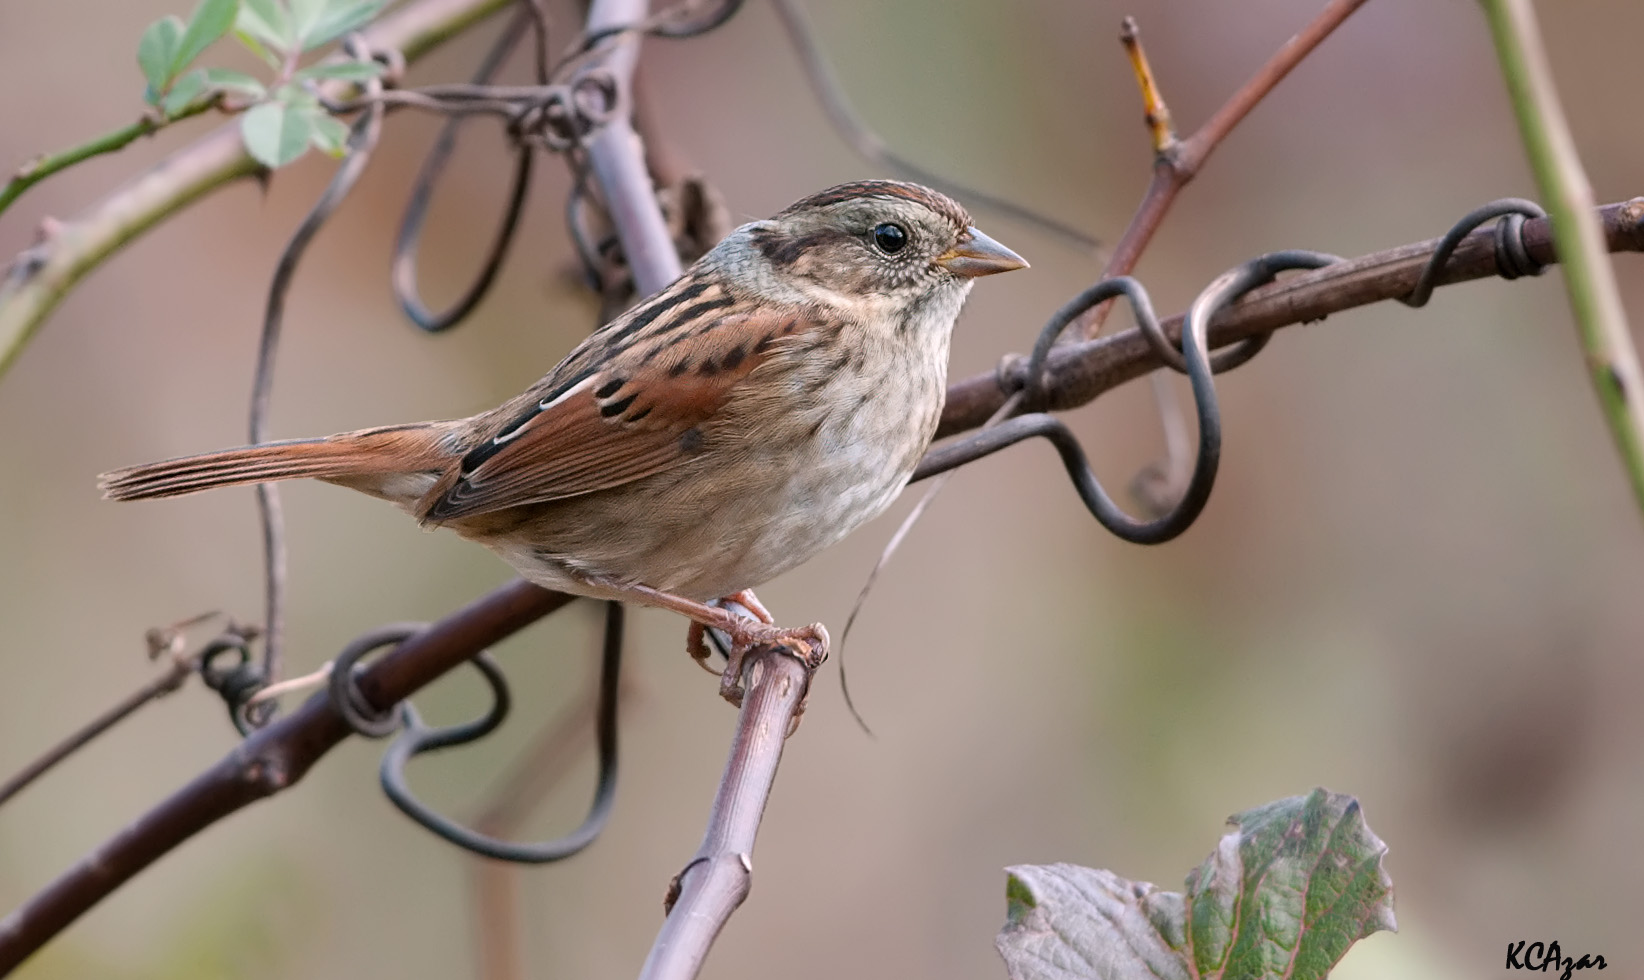 - Swamp Sparrow (Melospiza georgiana)Swamp Sparrows live in marshes and wetland areas. Their diet consists of insects and seeds. Their wingspan is 7.1-7.5 in. and they weigh 0.4-0.8 oz. Swamp Sparrows sing a trill note. They are protected on the US Migratory Bird list.Photo Credits: Kelly Colgan Azar